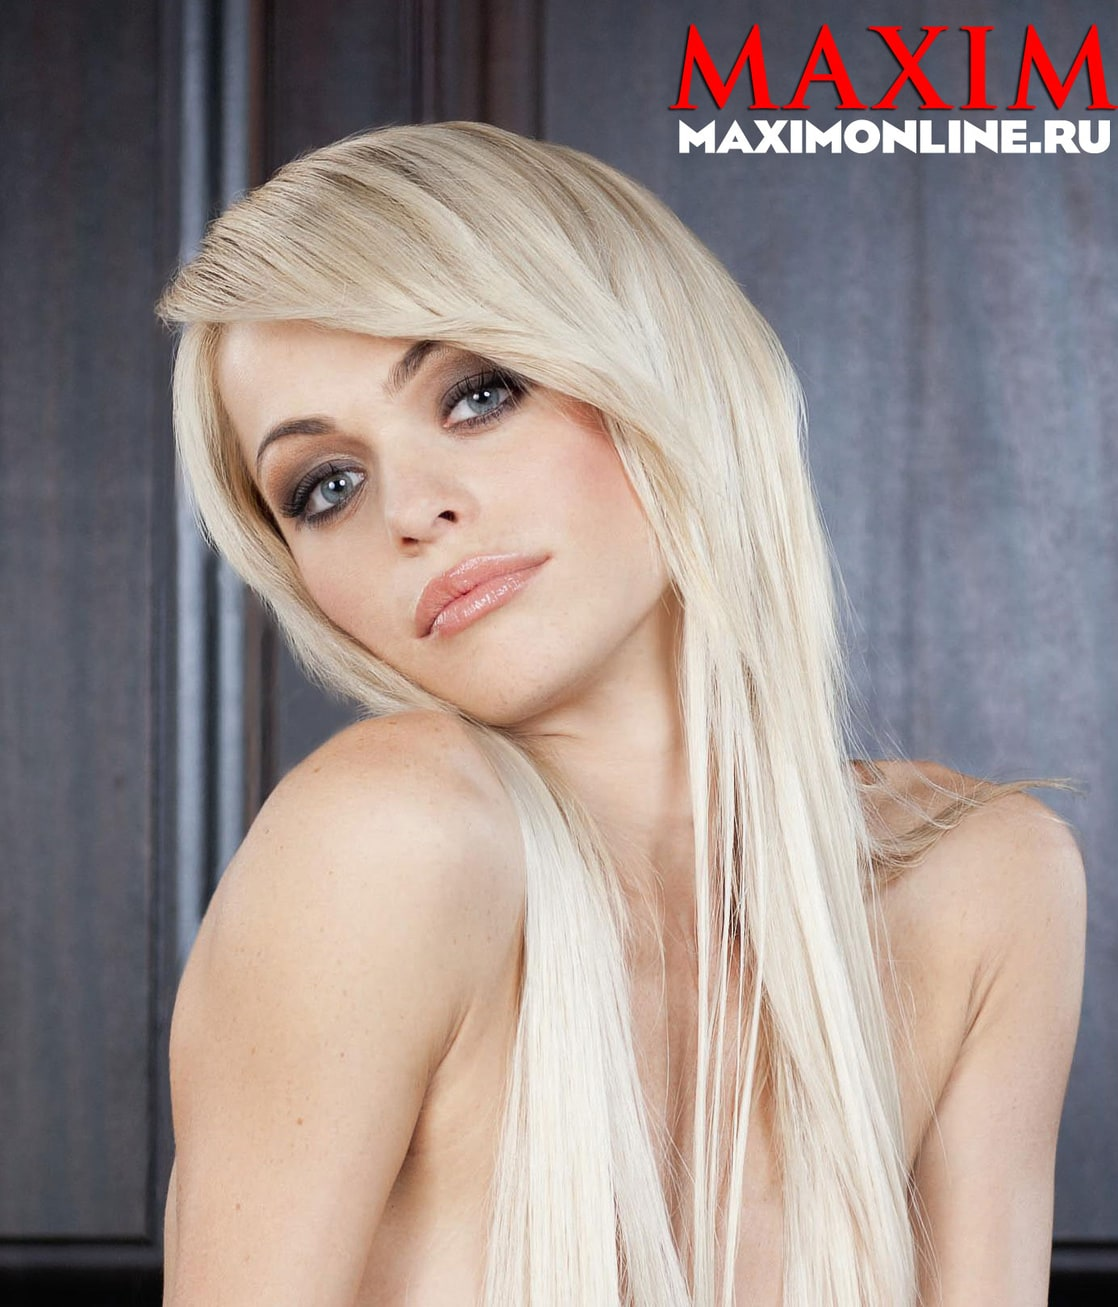 Selfie Anna Khilkevich nudes (95 photo), Ass, Leaked, Boobs, lingerie 2019